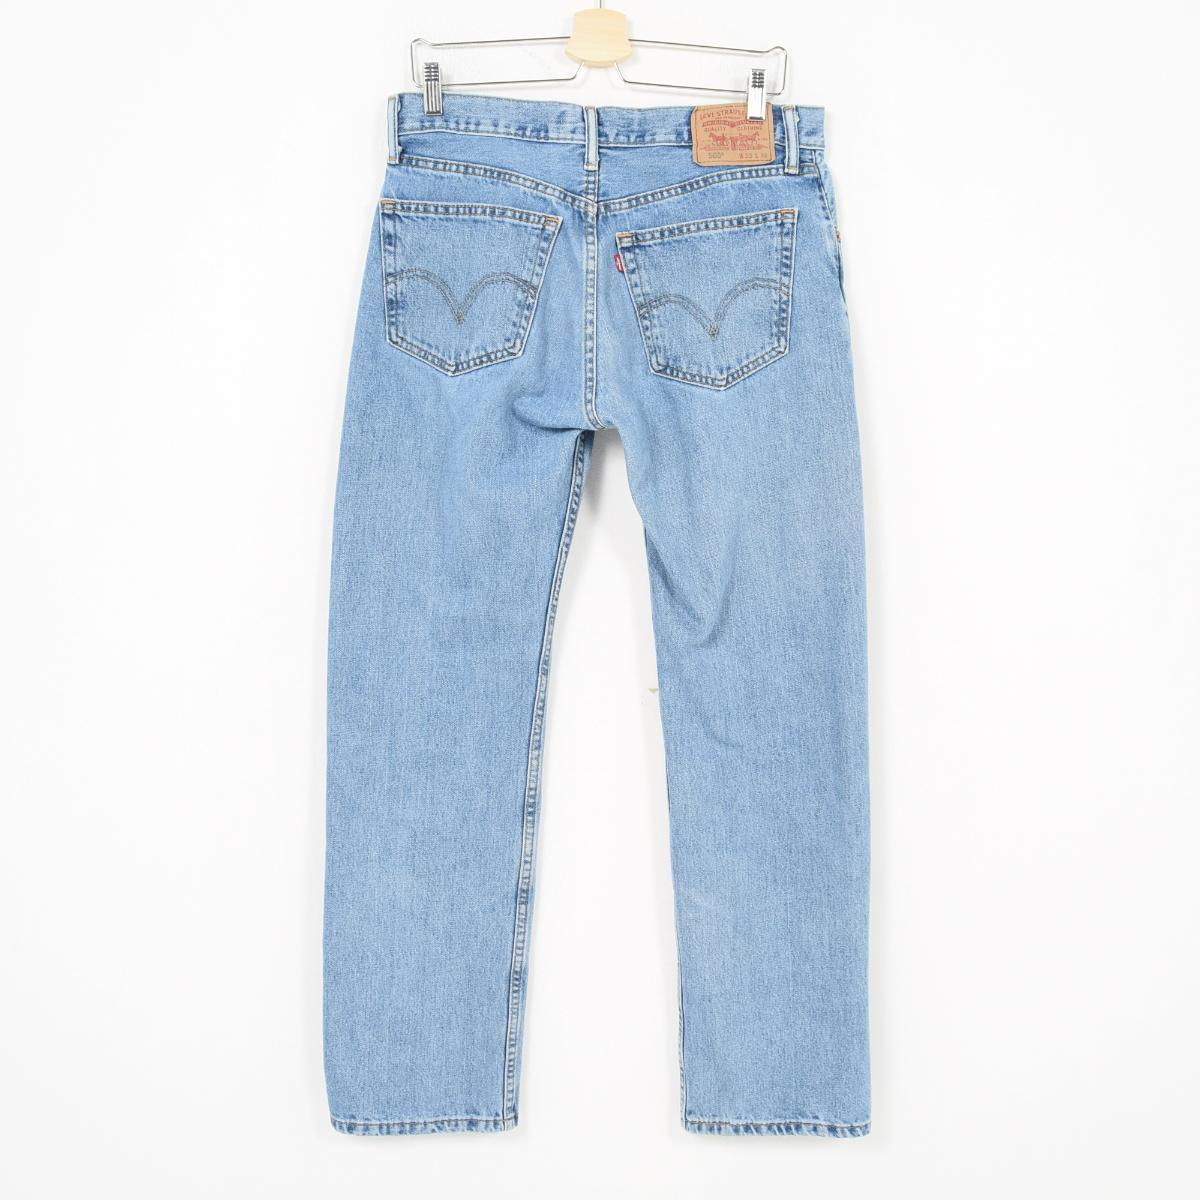 b2fac159031 ... Levis Levi's 505 STRAIGHT FIT tapered jeans denim underwear men w34  /wak2427 ...